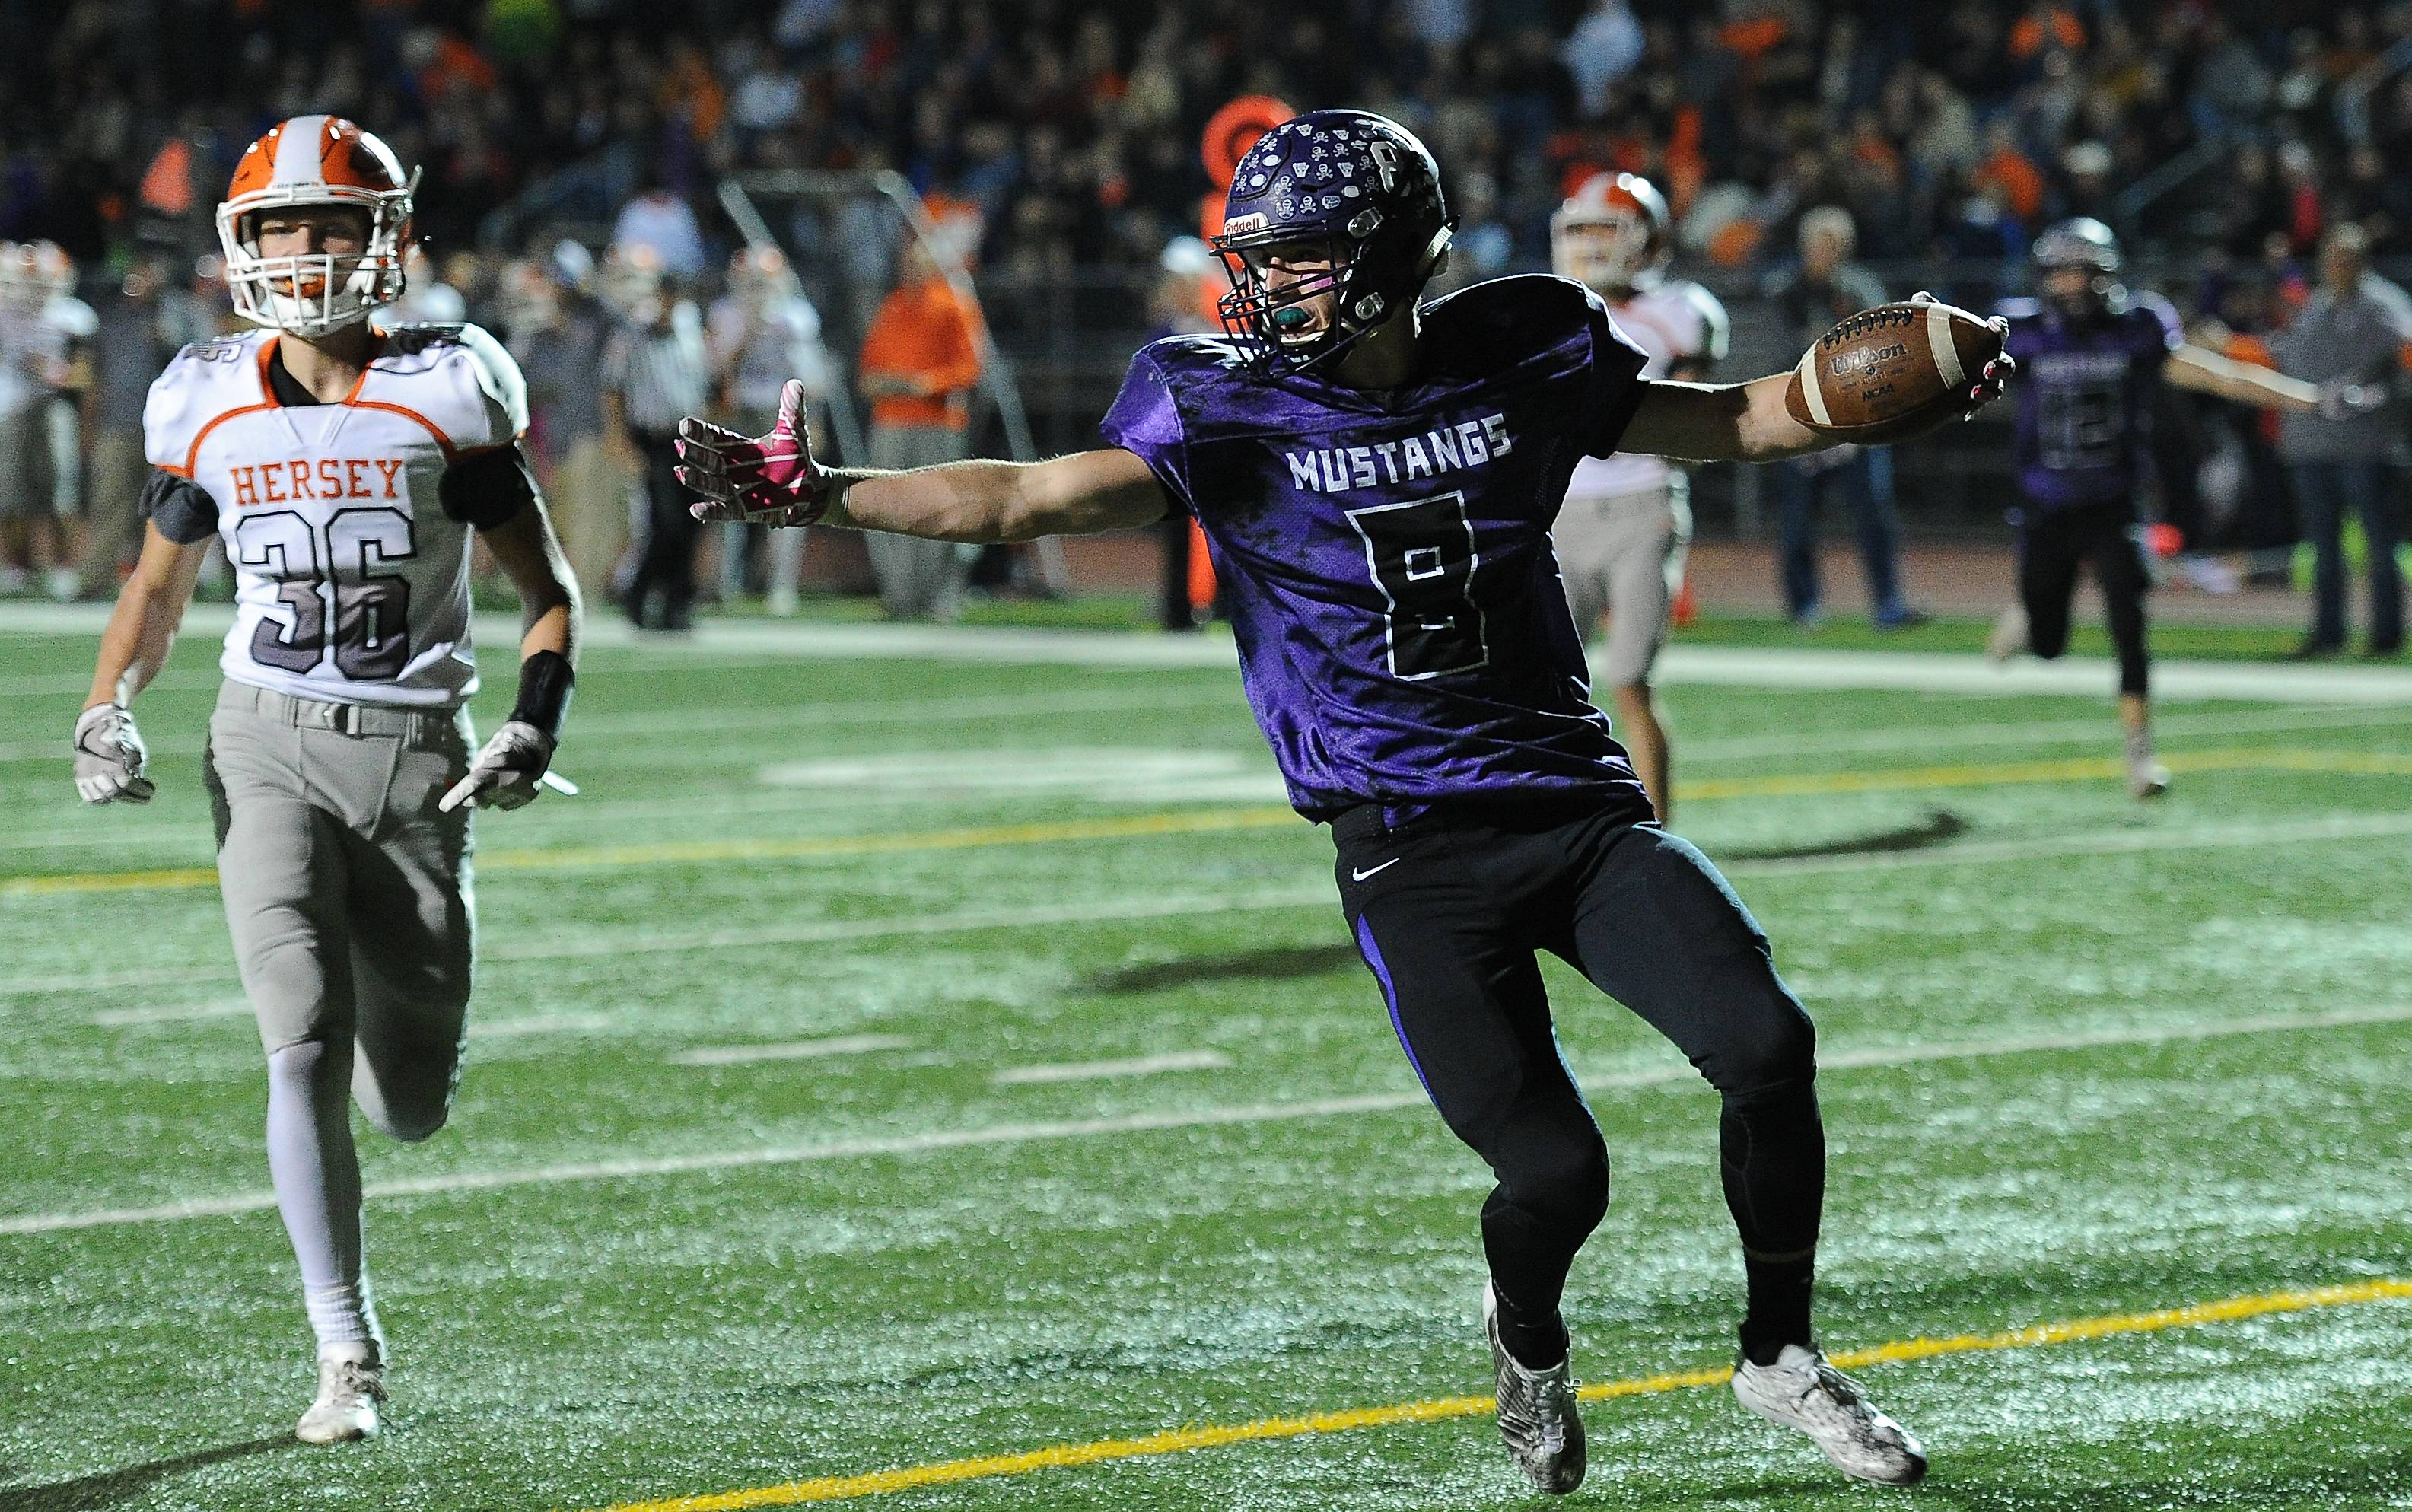 Rolling Meadows' Gregory Bouraoui scores a first-half touchdown past Hersey's Jordan Hansen.